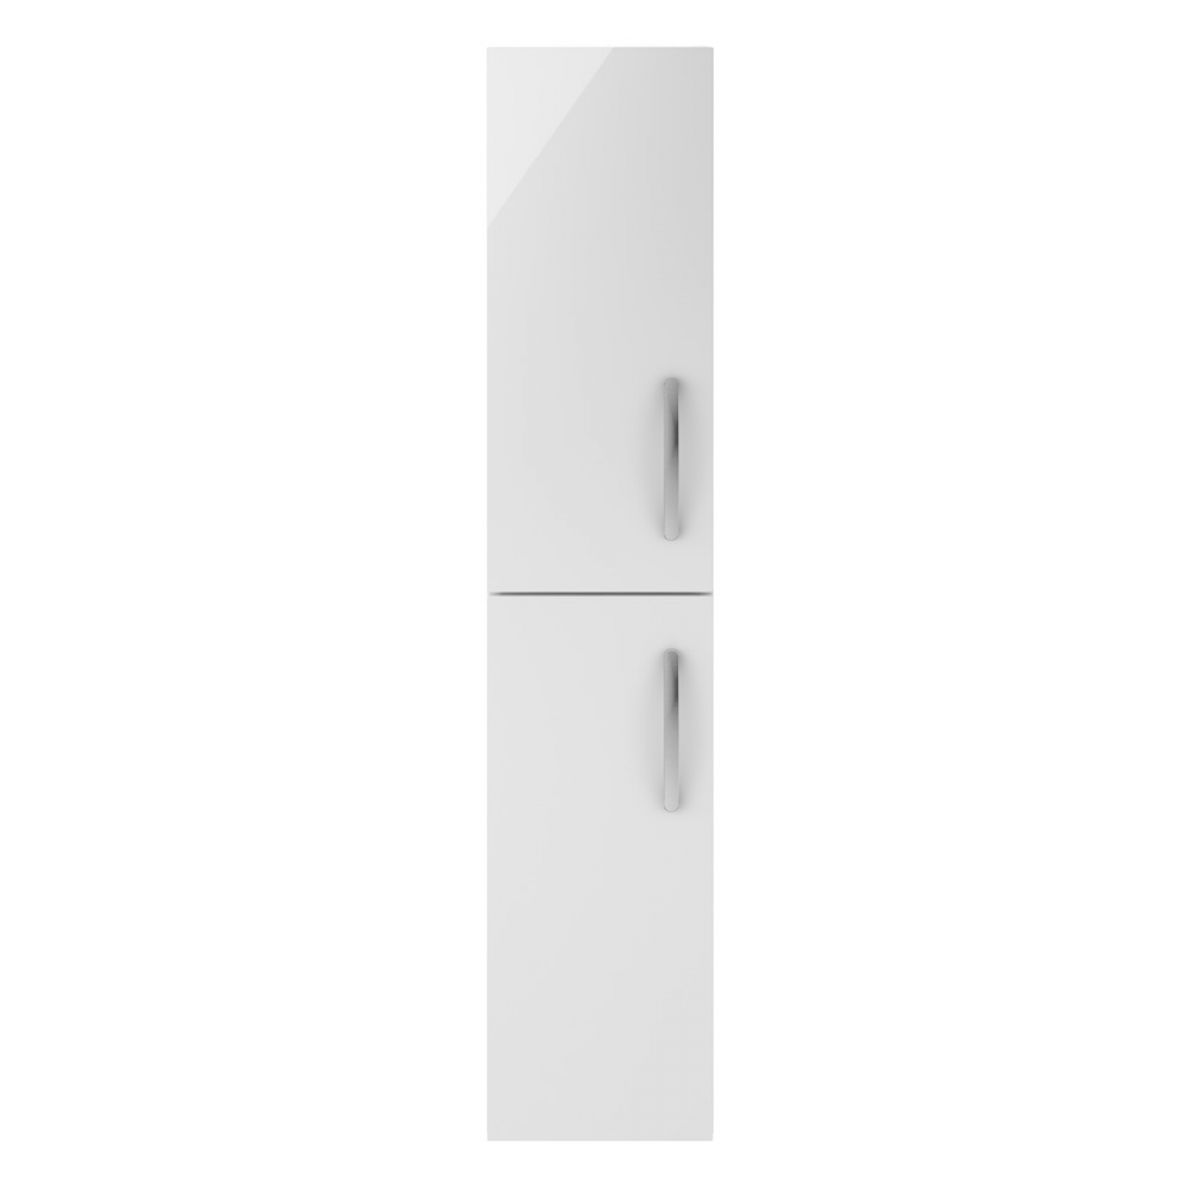 Premier Athena Gloss White Double Door Tall Unit 300mm